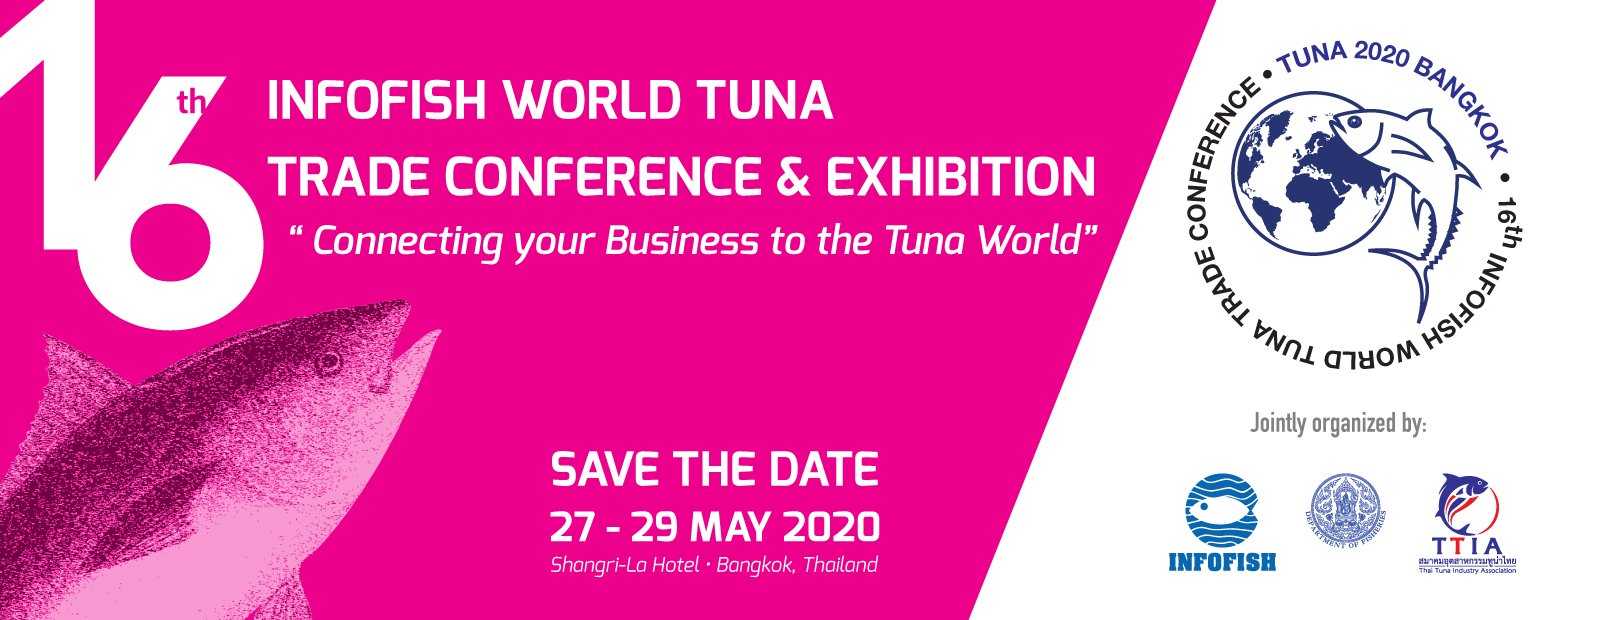 tuna2020_savethedate_final